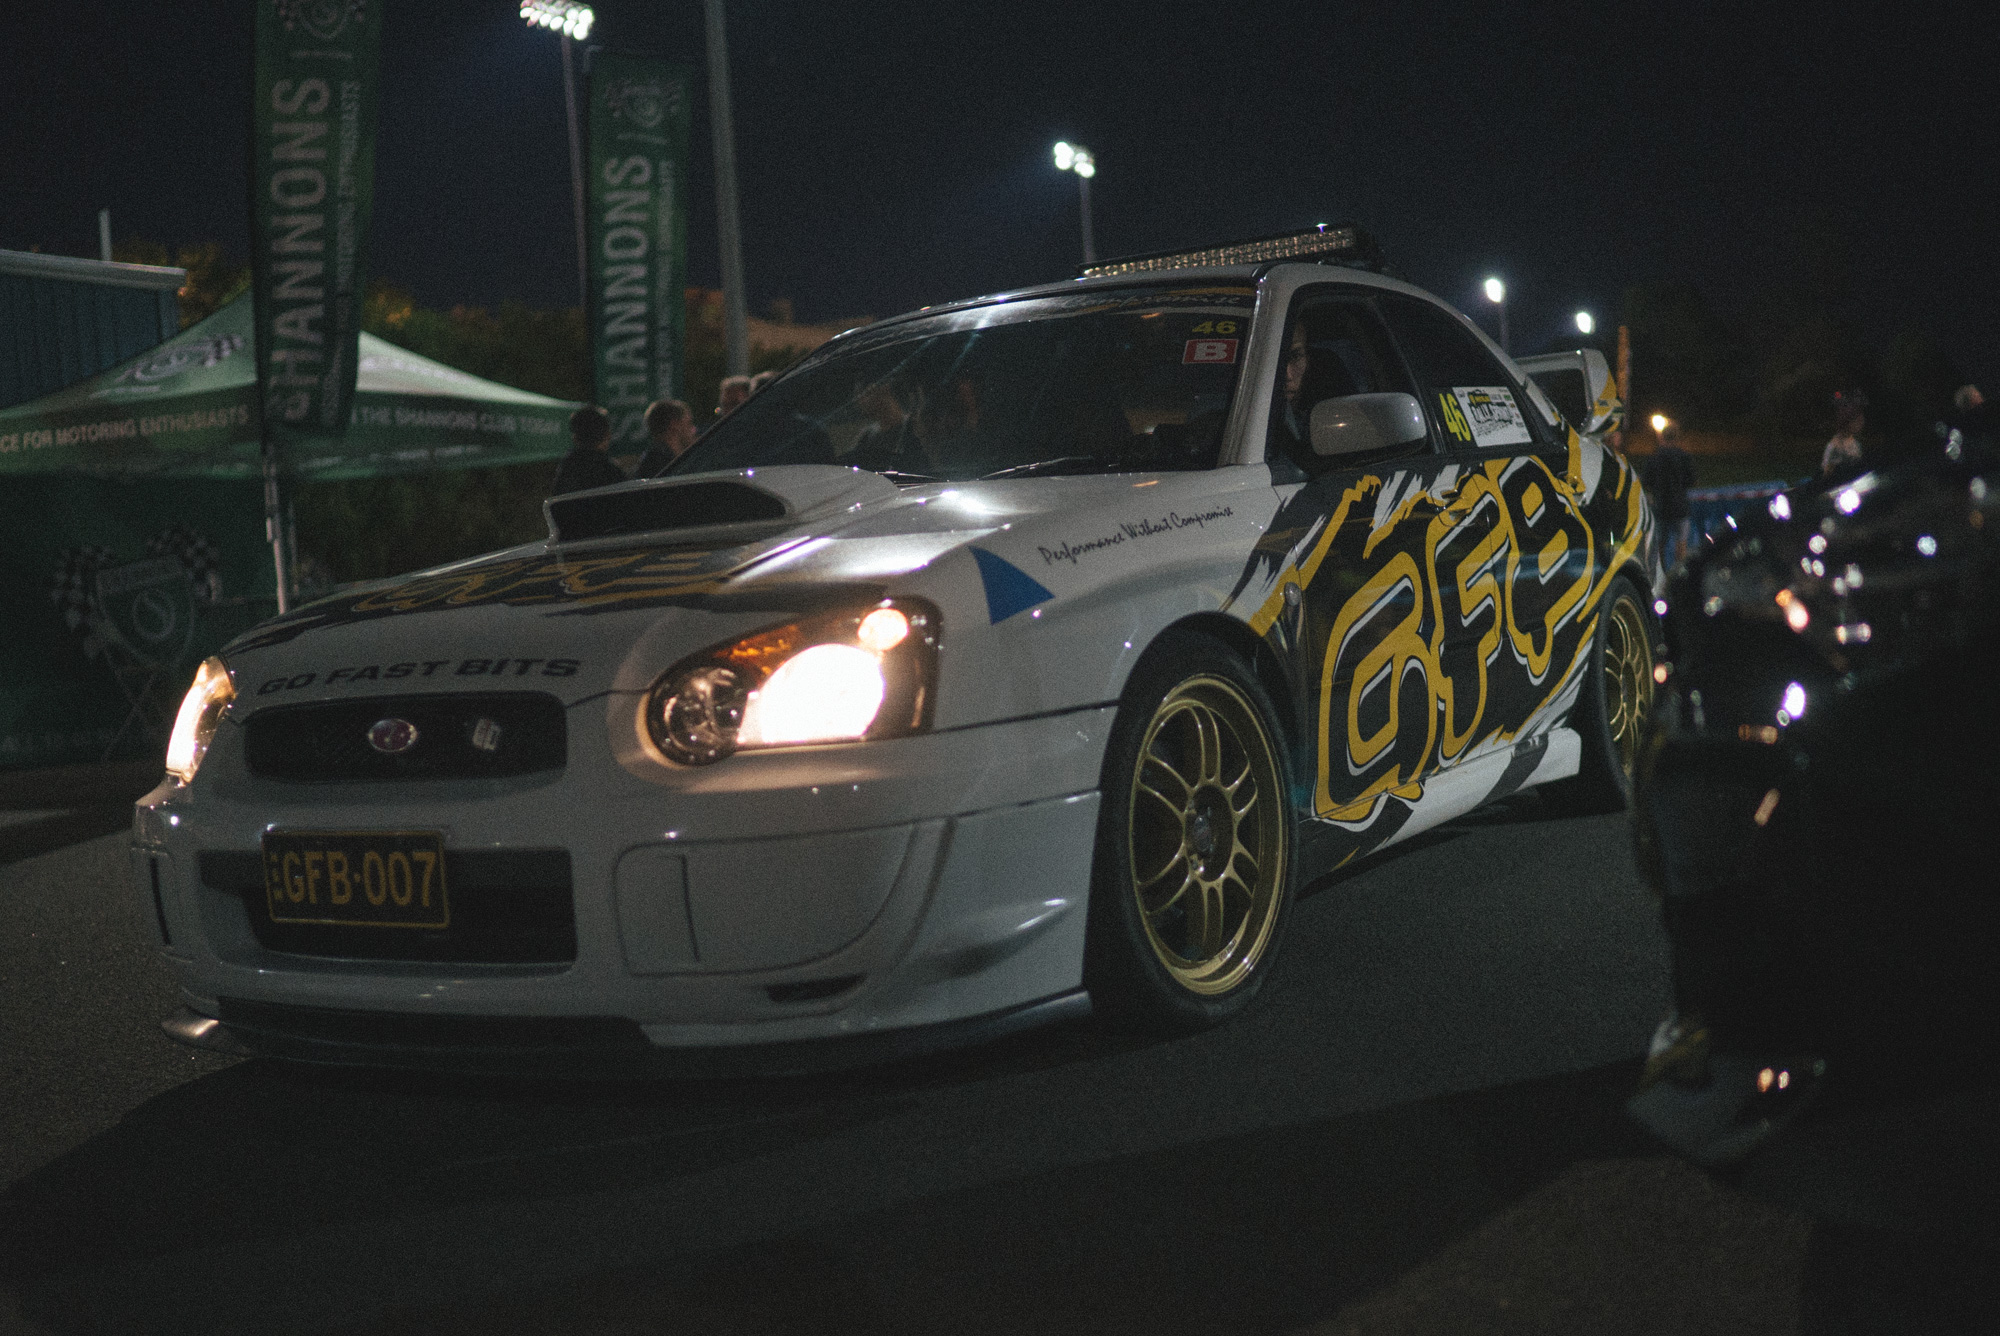 whiteline_rally_gfb